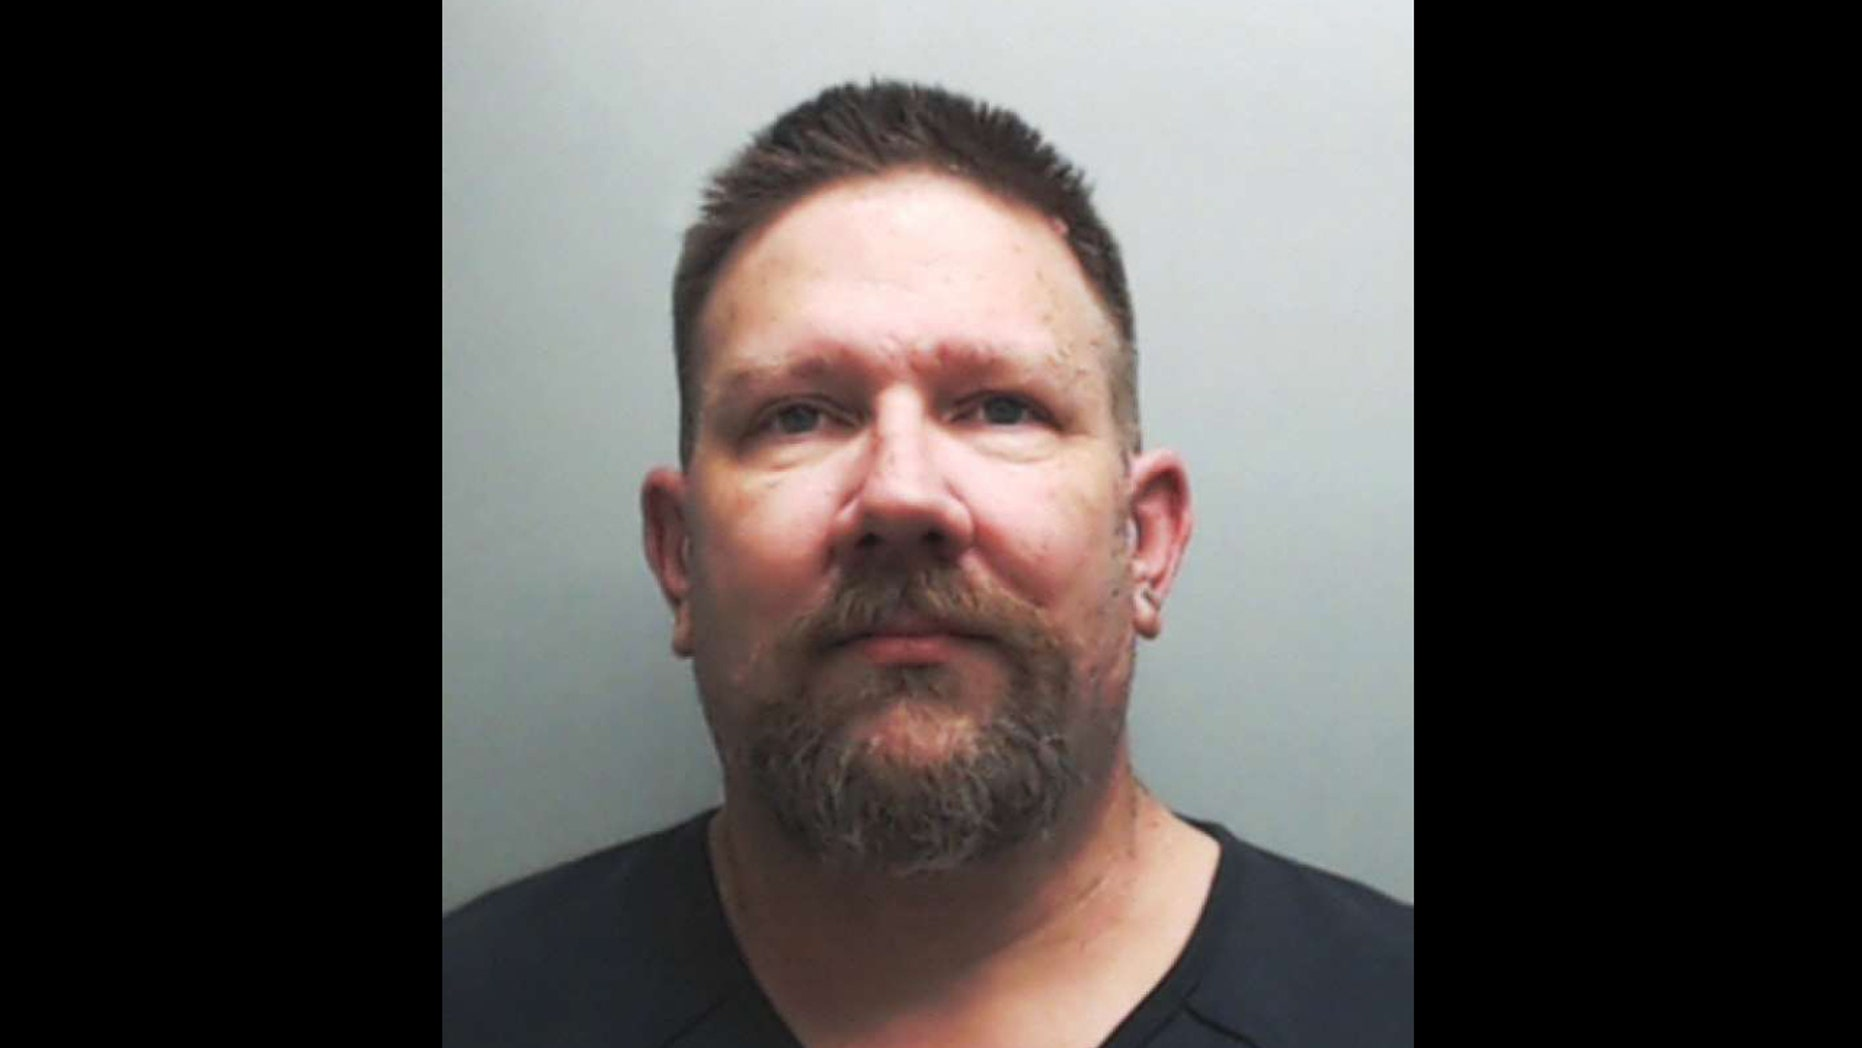 Robert Benjamin Franks was convicted for the continuous sexual abuse of two young girls and sentenced to more than 1,000 years in prison on Monday.